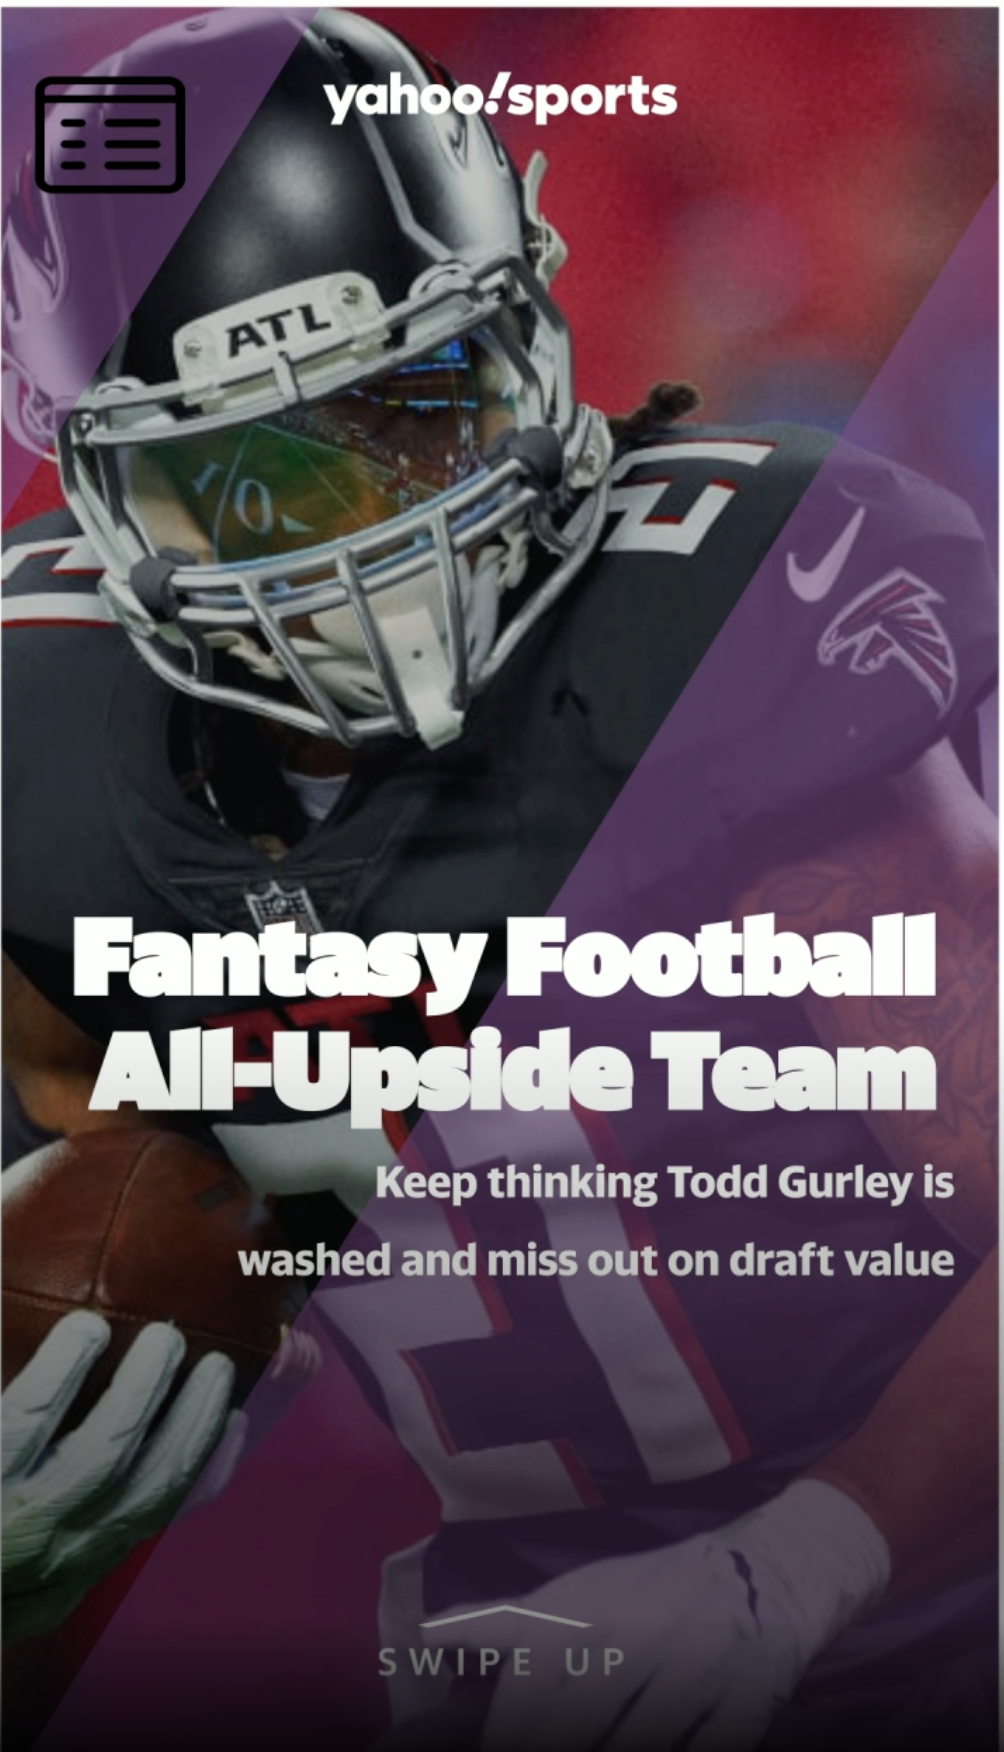 Your 2020 Fantasy Football All Upside Team Keep Thinking Todd Gurley Is Washed And Miss Out On Draft Value